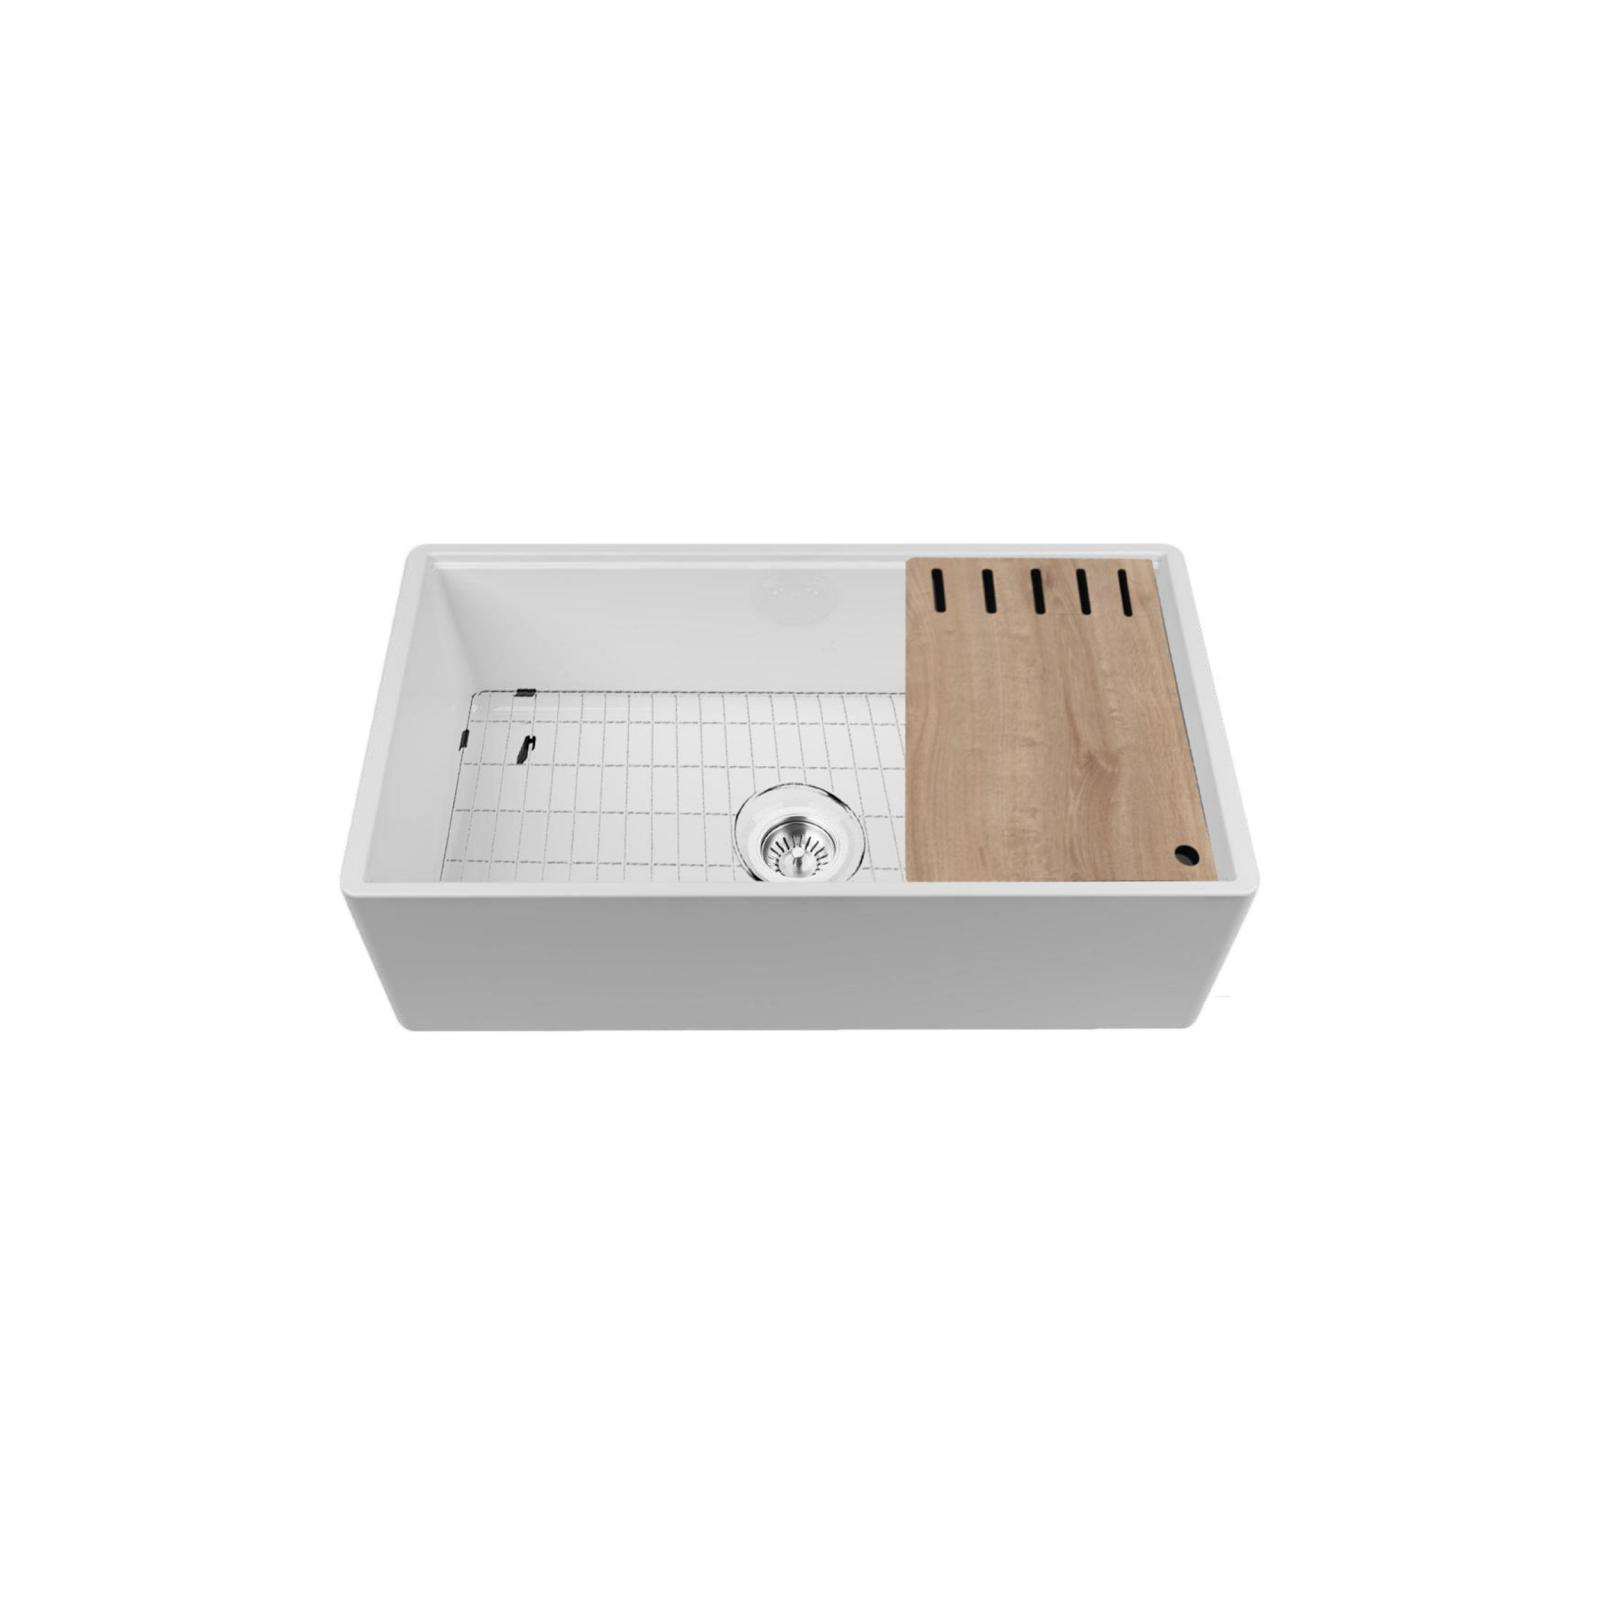 High-quality sink Louis Le Grand III - single bowl, ceramic - 3